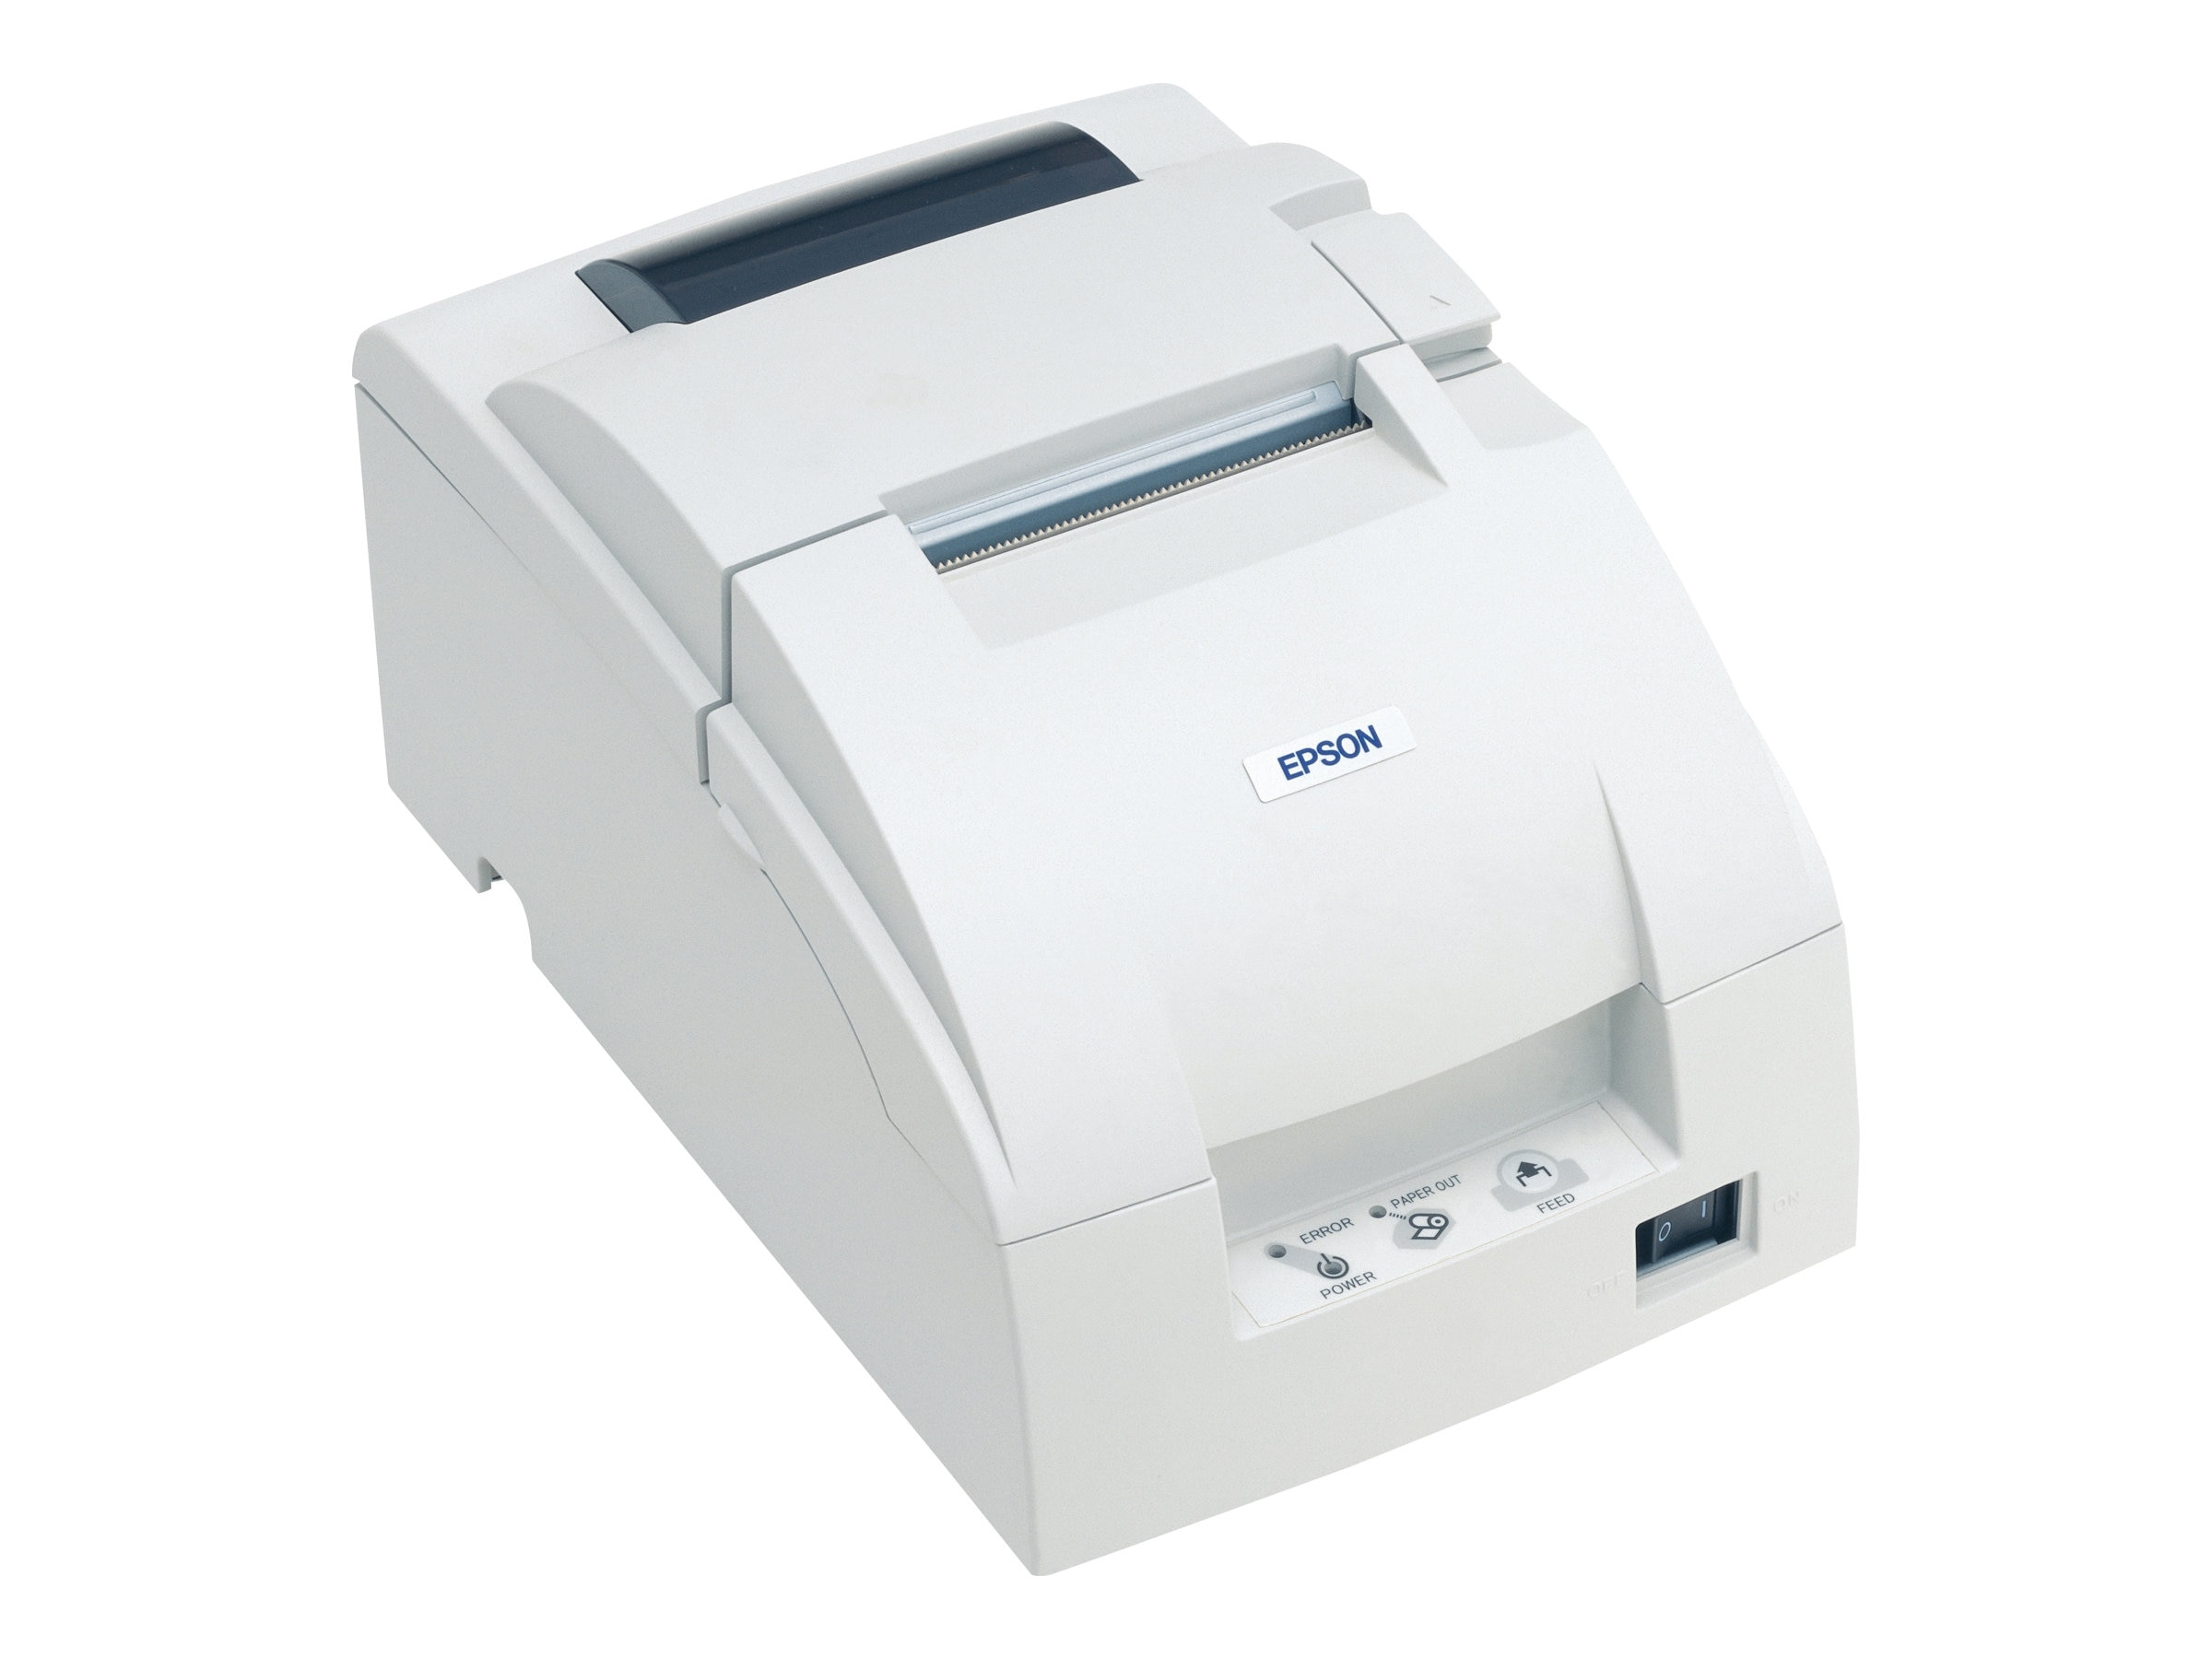 Epson TM-U220B Dot Matrix Ethernet Printer - White w  AC Power Supply, C31C514A8201, 14450230, Printers - POS Receipt